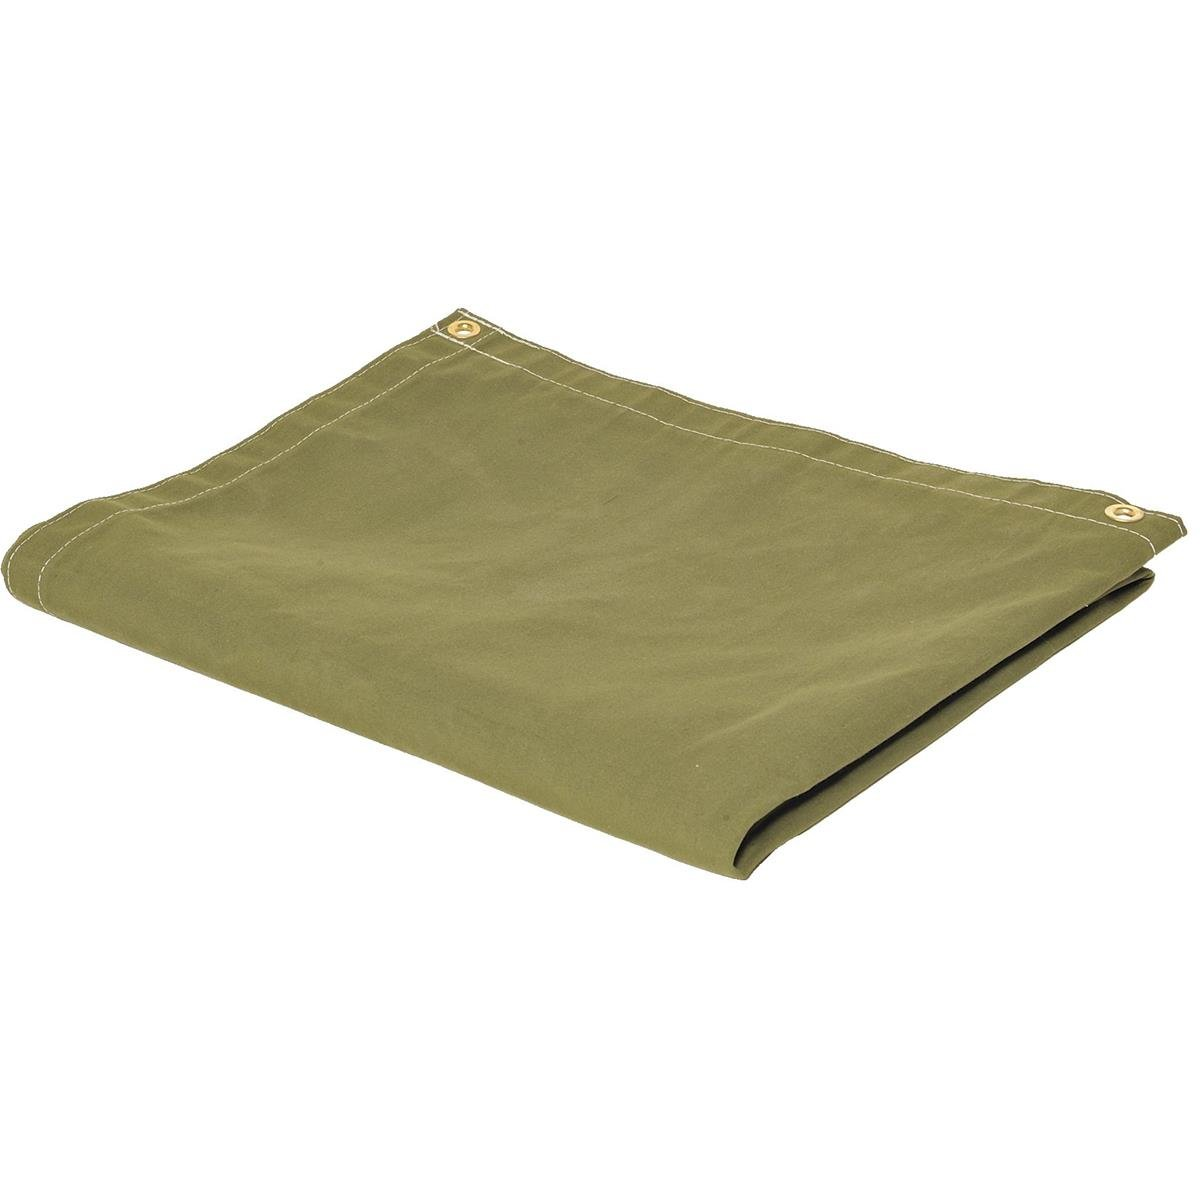 GEMPLER'S Weather Tough Super Tarp, 4'x 8' Olive Green Ultra-Strong Rugged Breathable Waterproof Poly/Canvas Blend Tarpaulin Outdoor Cover with Brass Spur Grommets